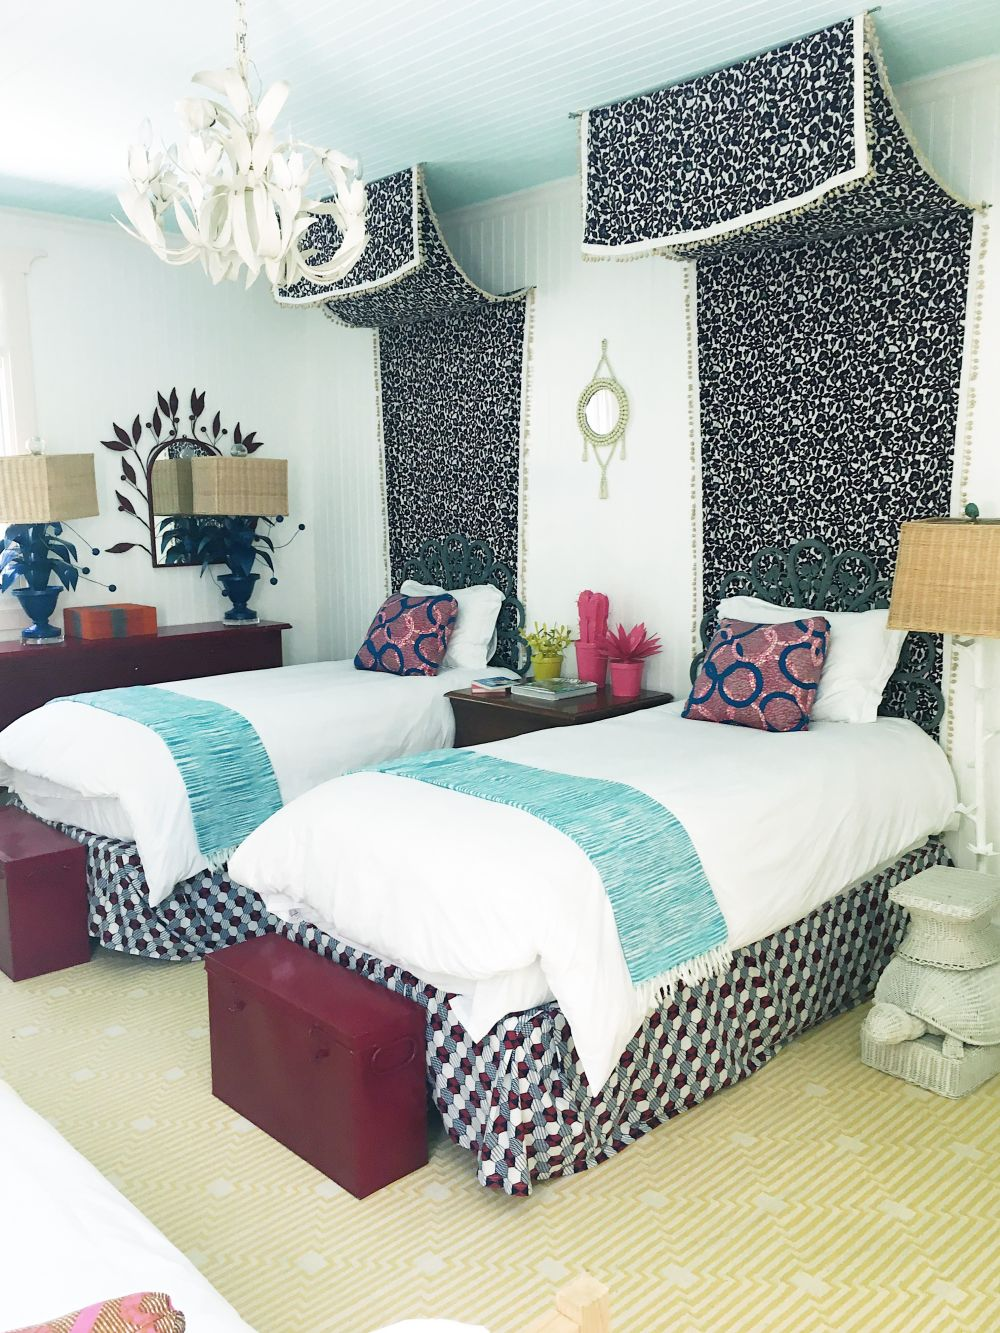 Shared bohemian bedroom with twin beds